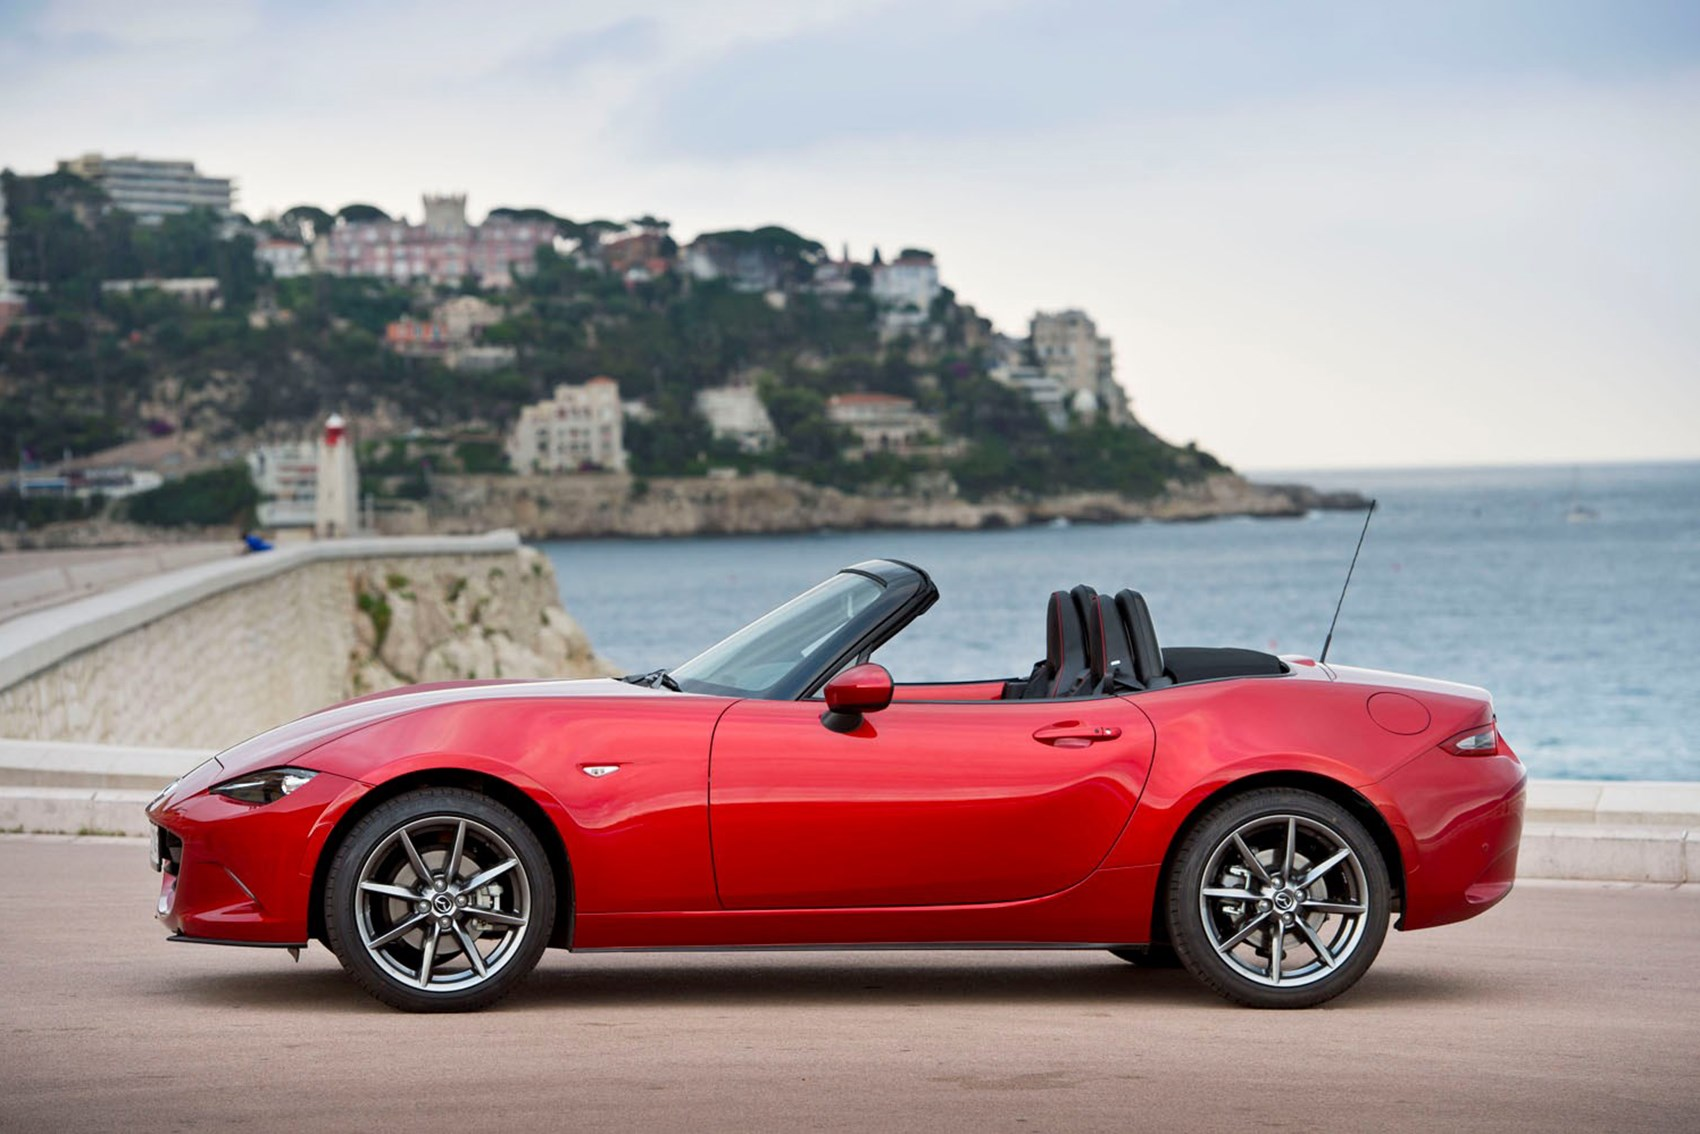 Mazda MX-5 - cheap fast cars